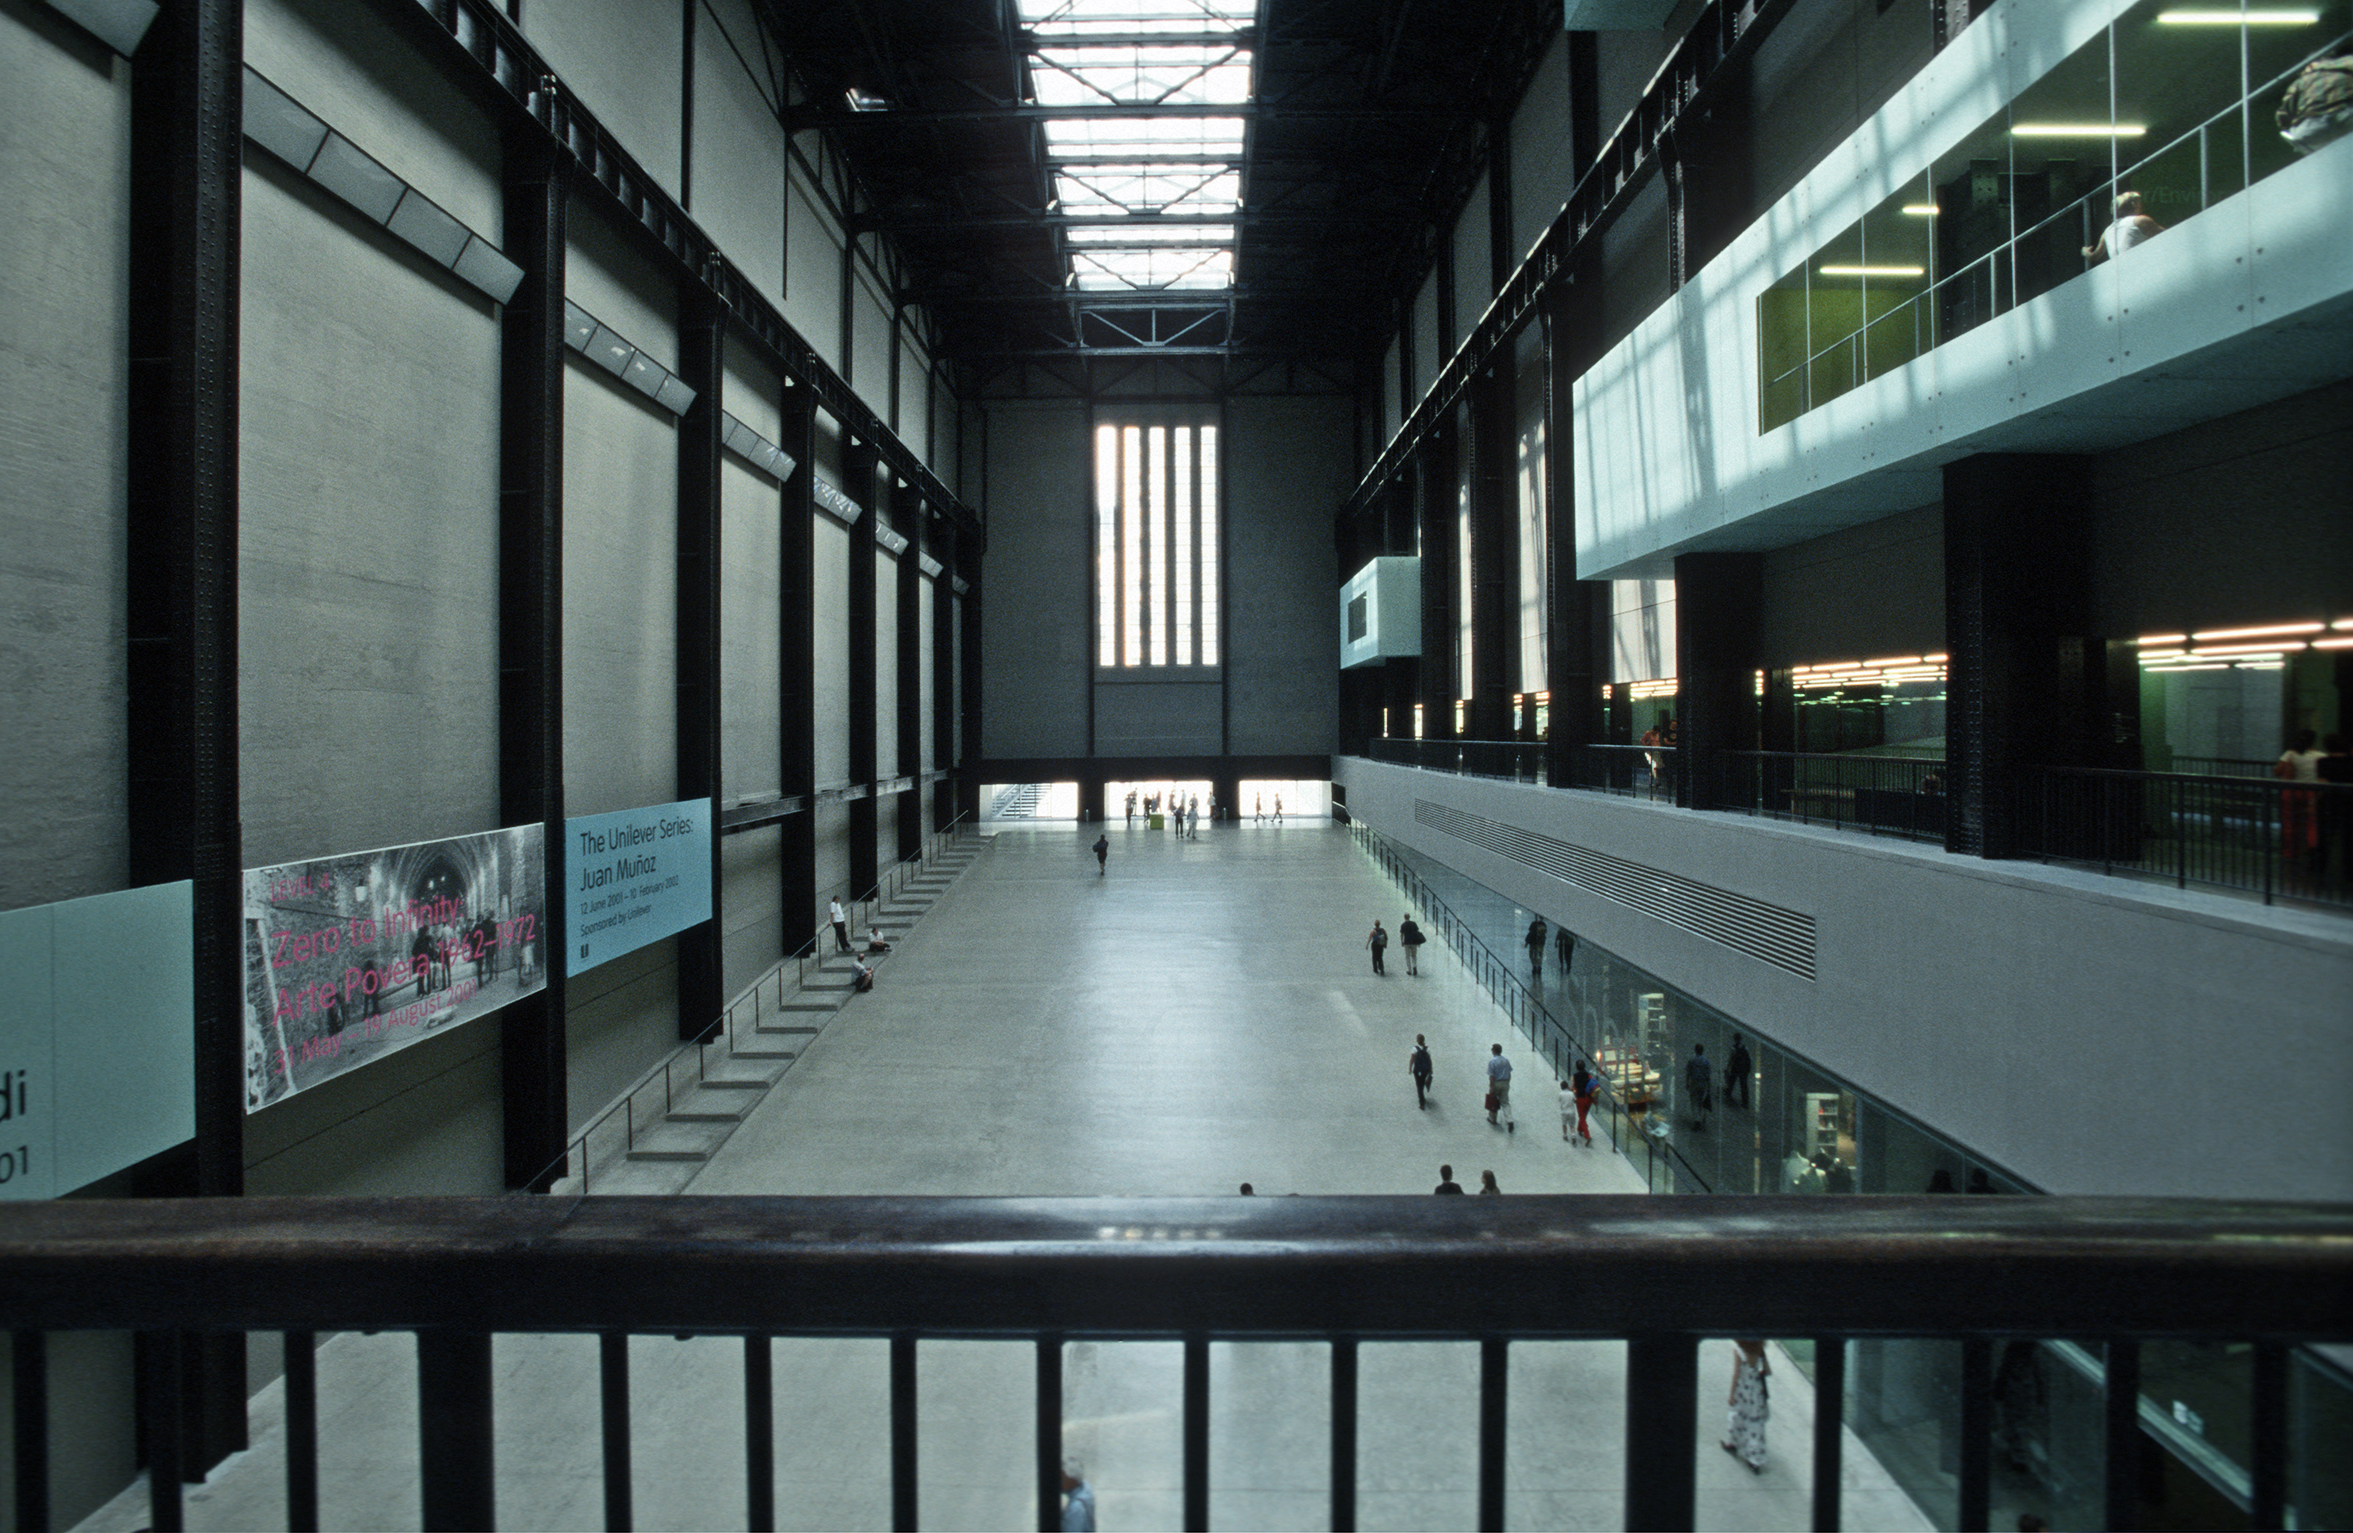 File:Tate modern london 2001 04.jpg